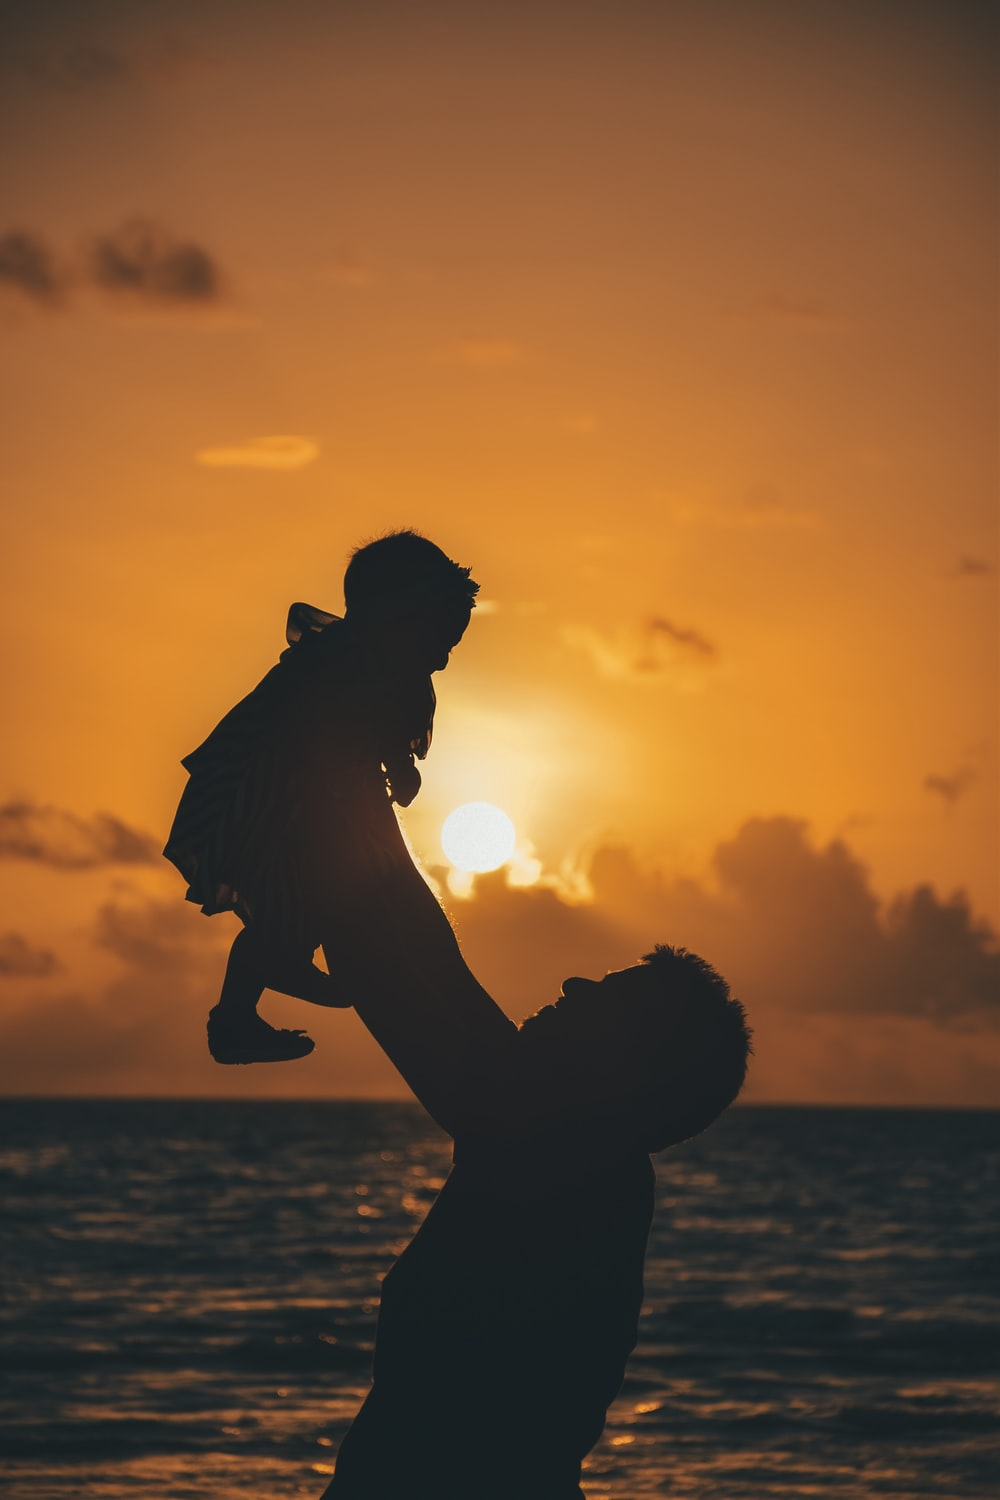 350+ Father And Son Pictures [HD] | Download Free Images ...